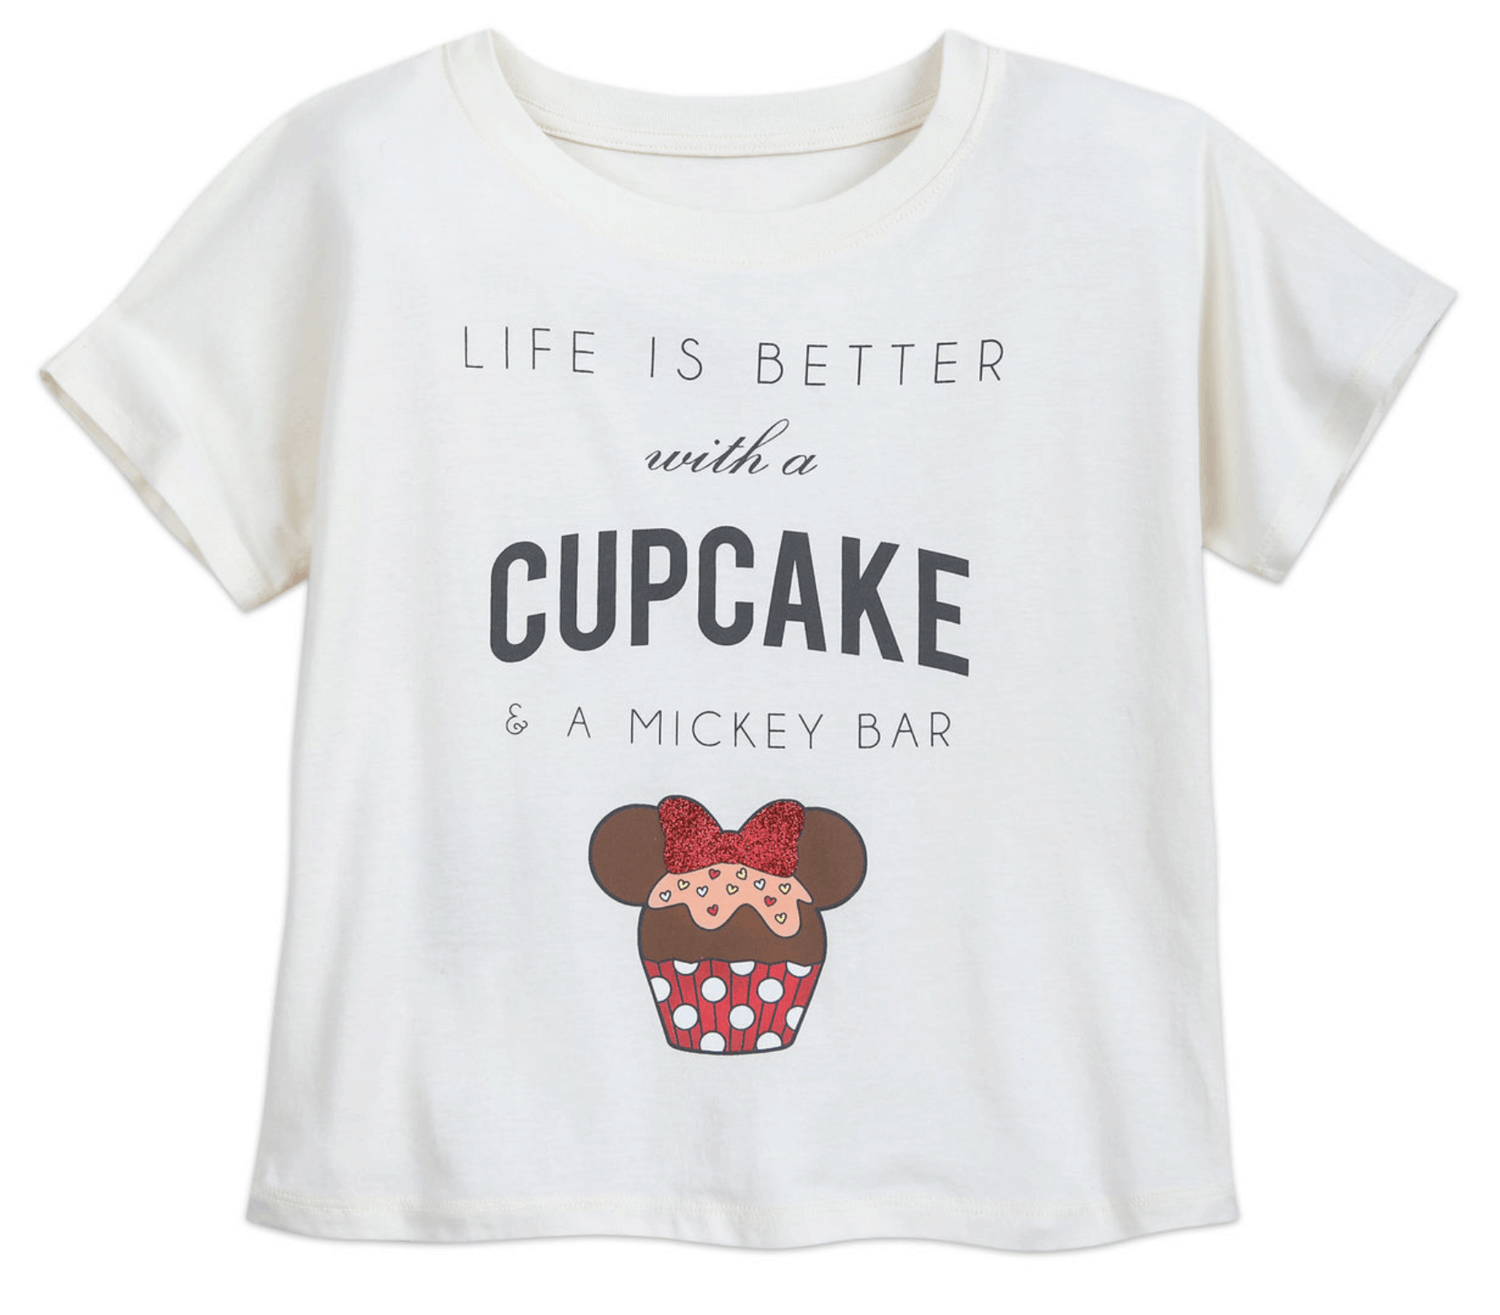 Shop New Disney Outfits That Will Make You Hungry 8